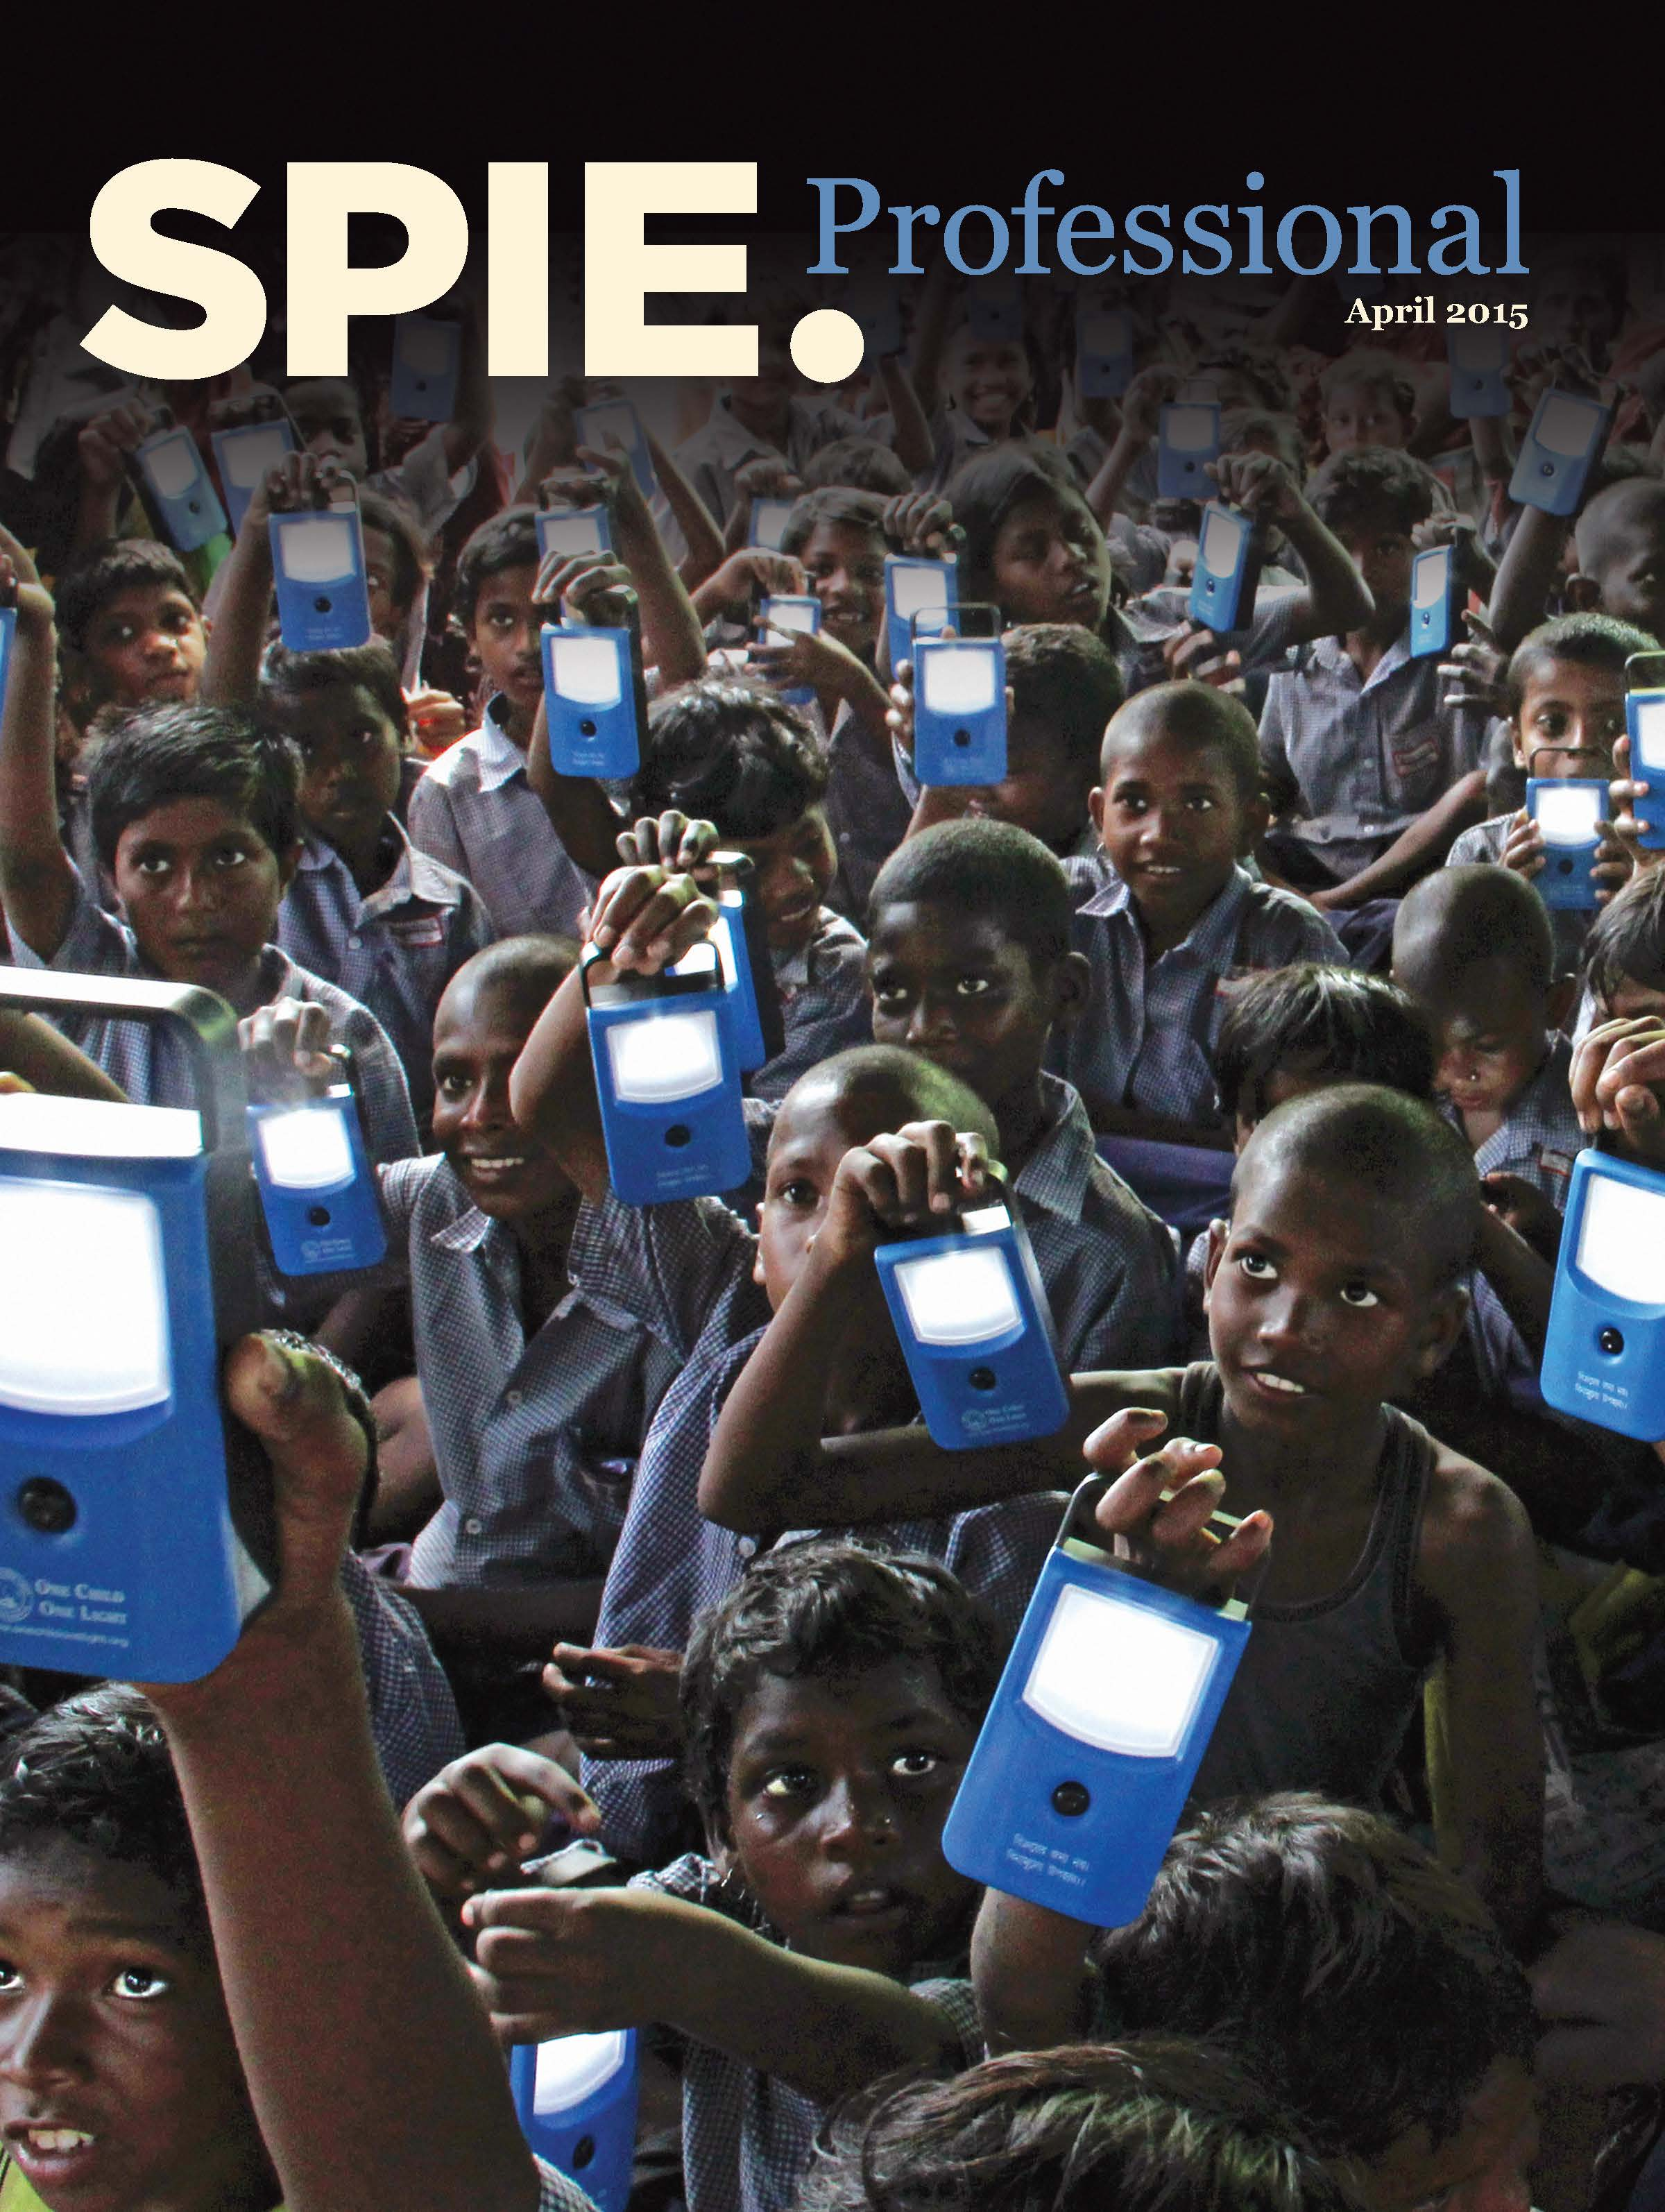 SPIE Professional April 2015